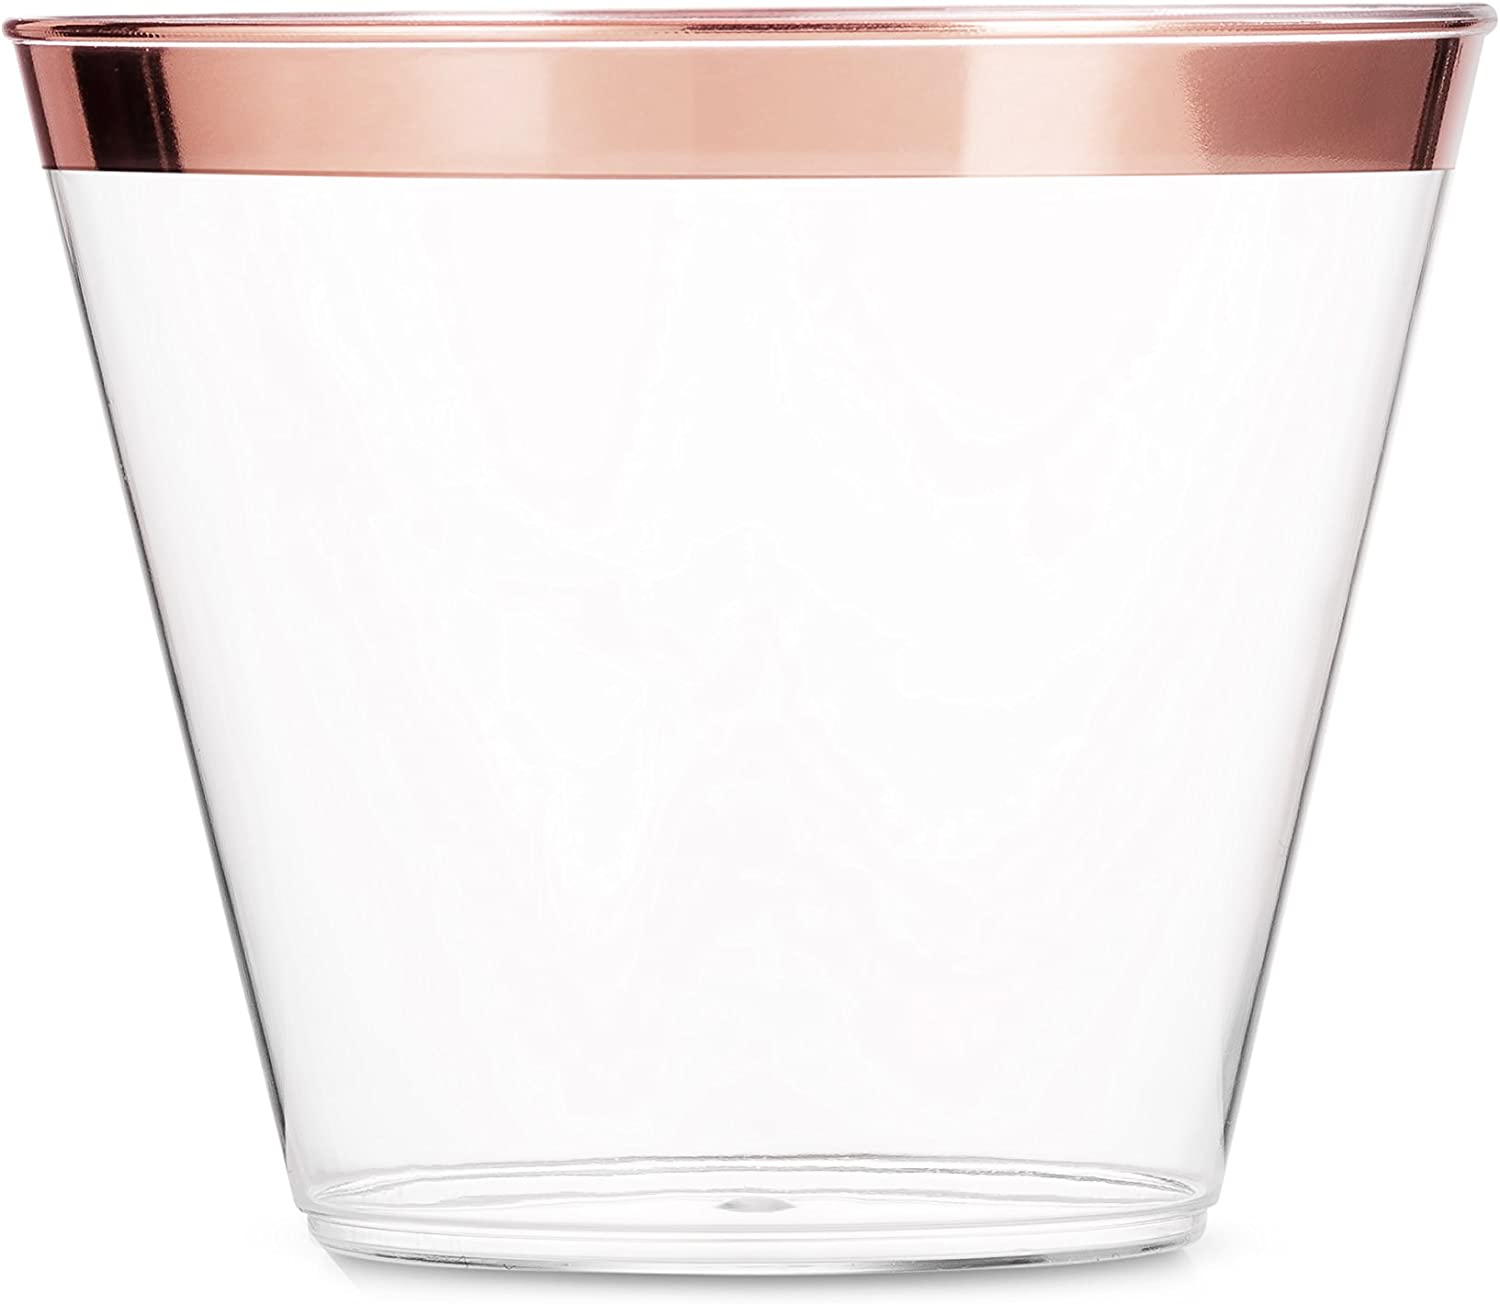 Disposable Plastic Cups Rose Gold Rimmed Transparent Tableware for Party